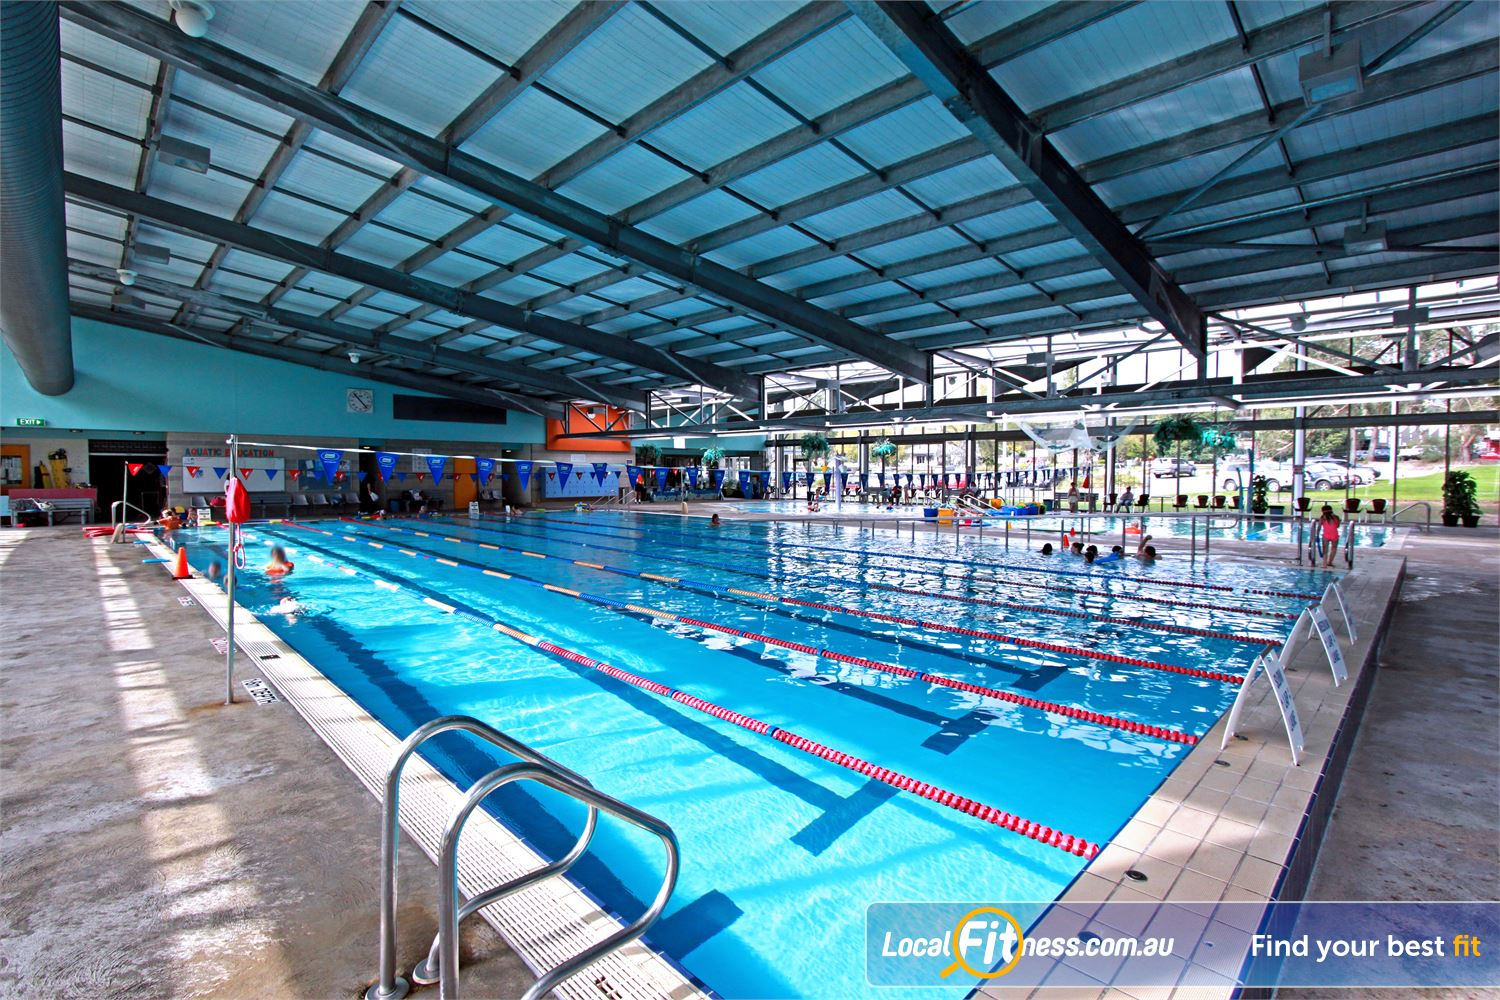 Yarra Recreation Centre Near Millgrove The 25 metre indoor Yarra Junction swimming pool.